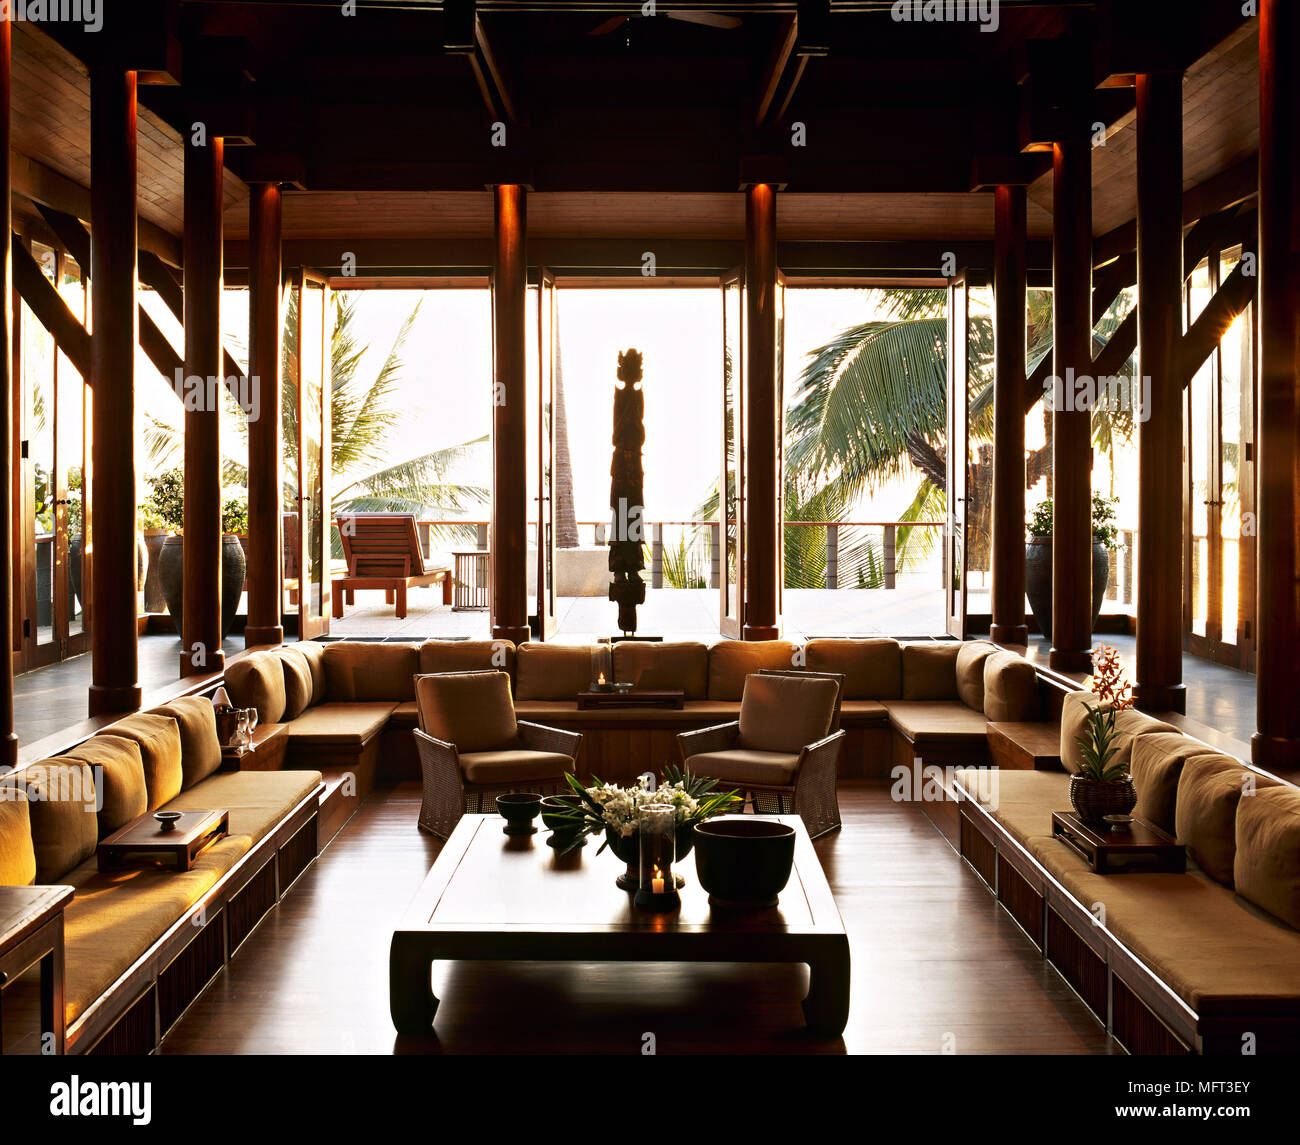 Lounge Area Of Thai Hotel Communal Seating Area Interiors Hotels Rooms Architecture Stock Photo Alamy